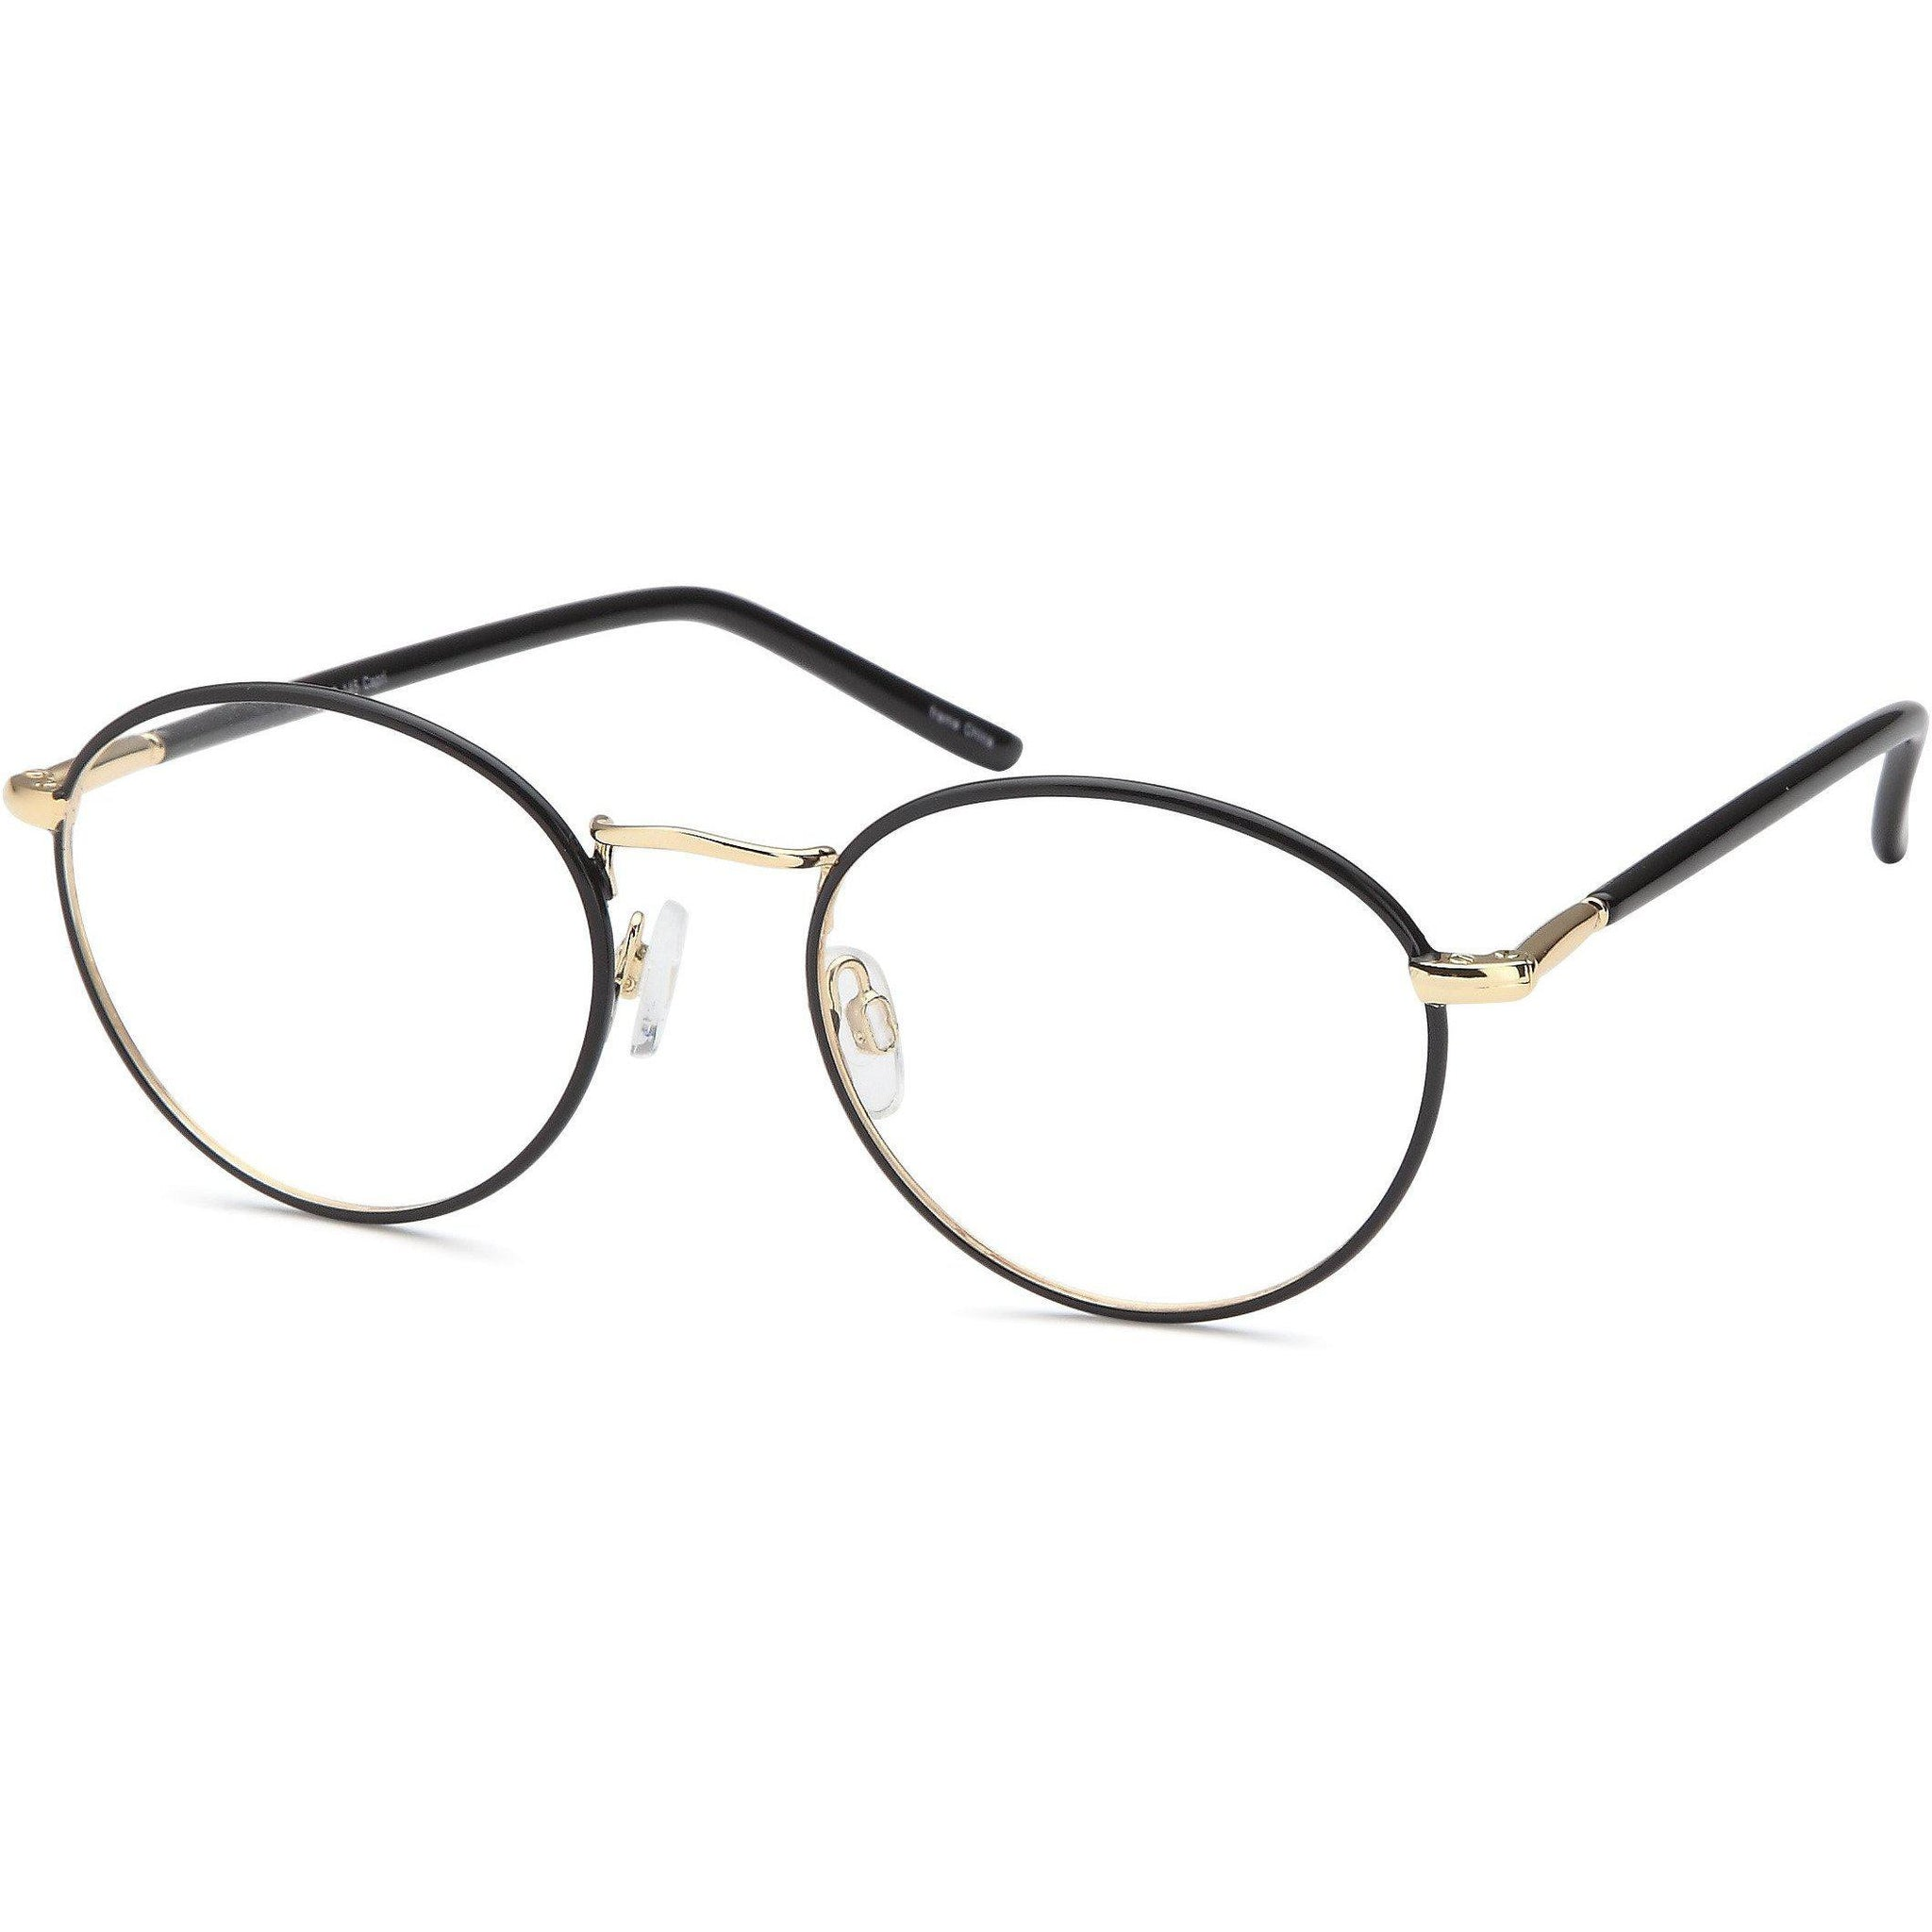 Di Caprio Prescription Glasses DC 145 Eyeglasses Frame - timetoshade